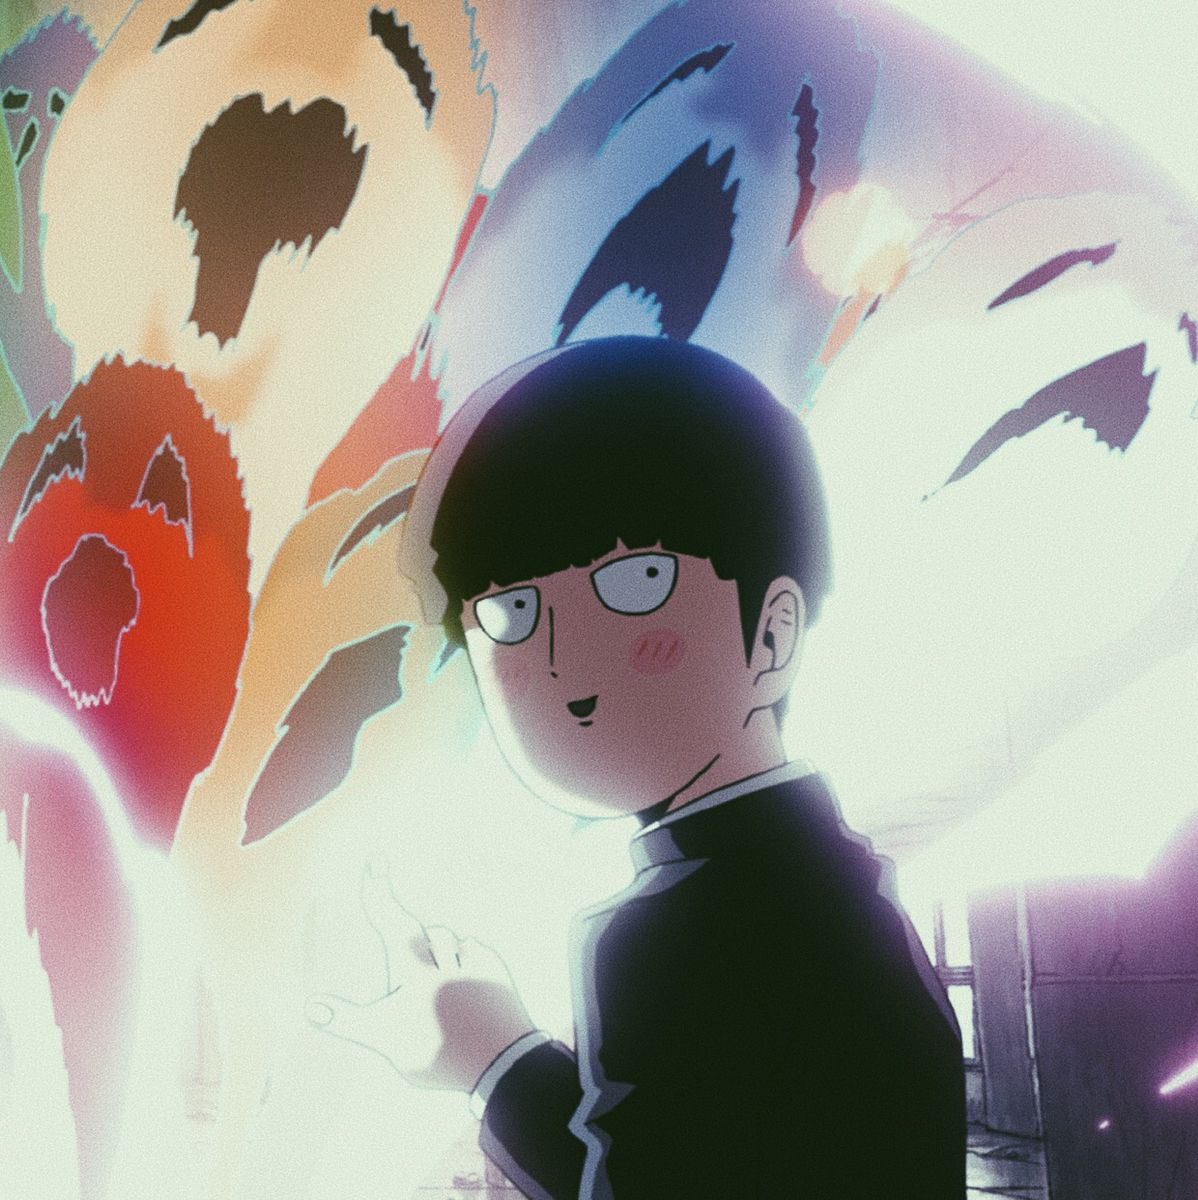 mob psycho 100 icons🦋 in 2020 Mob psycho 100 anime, Mob